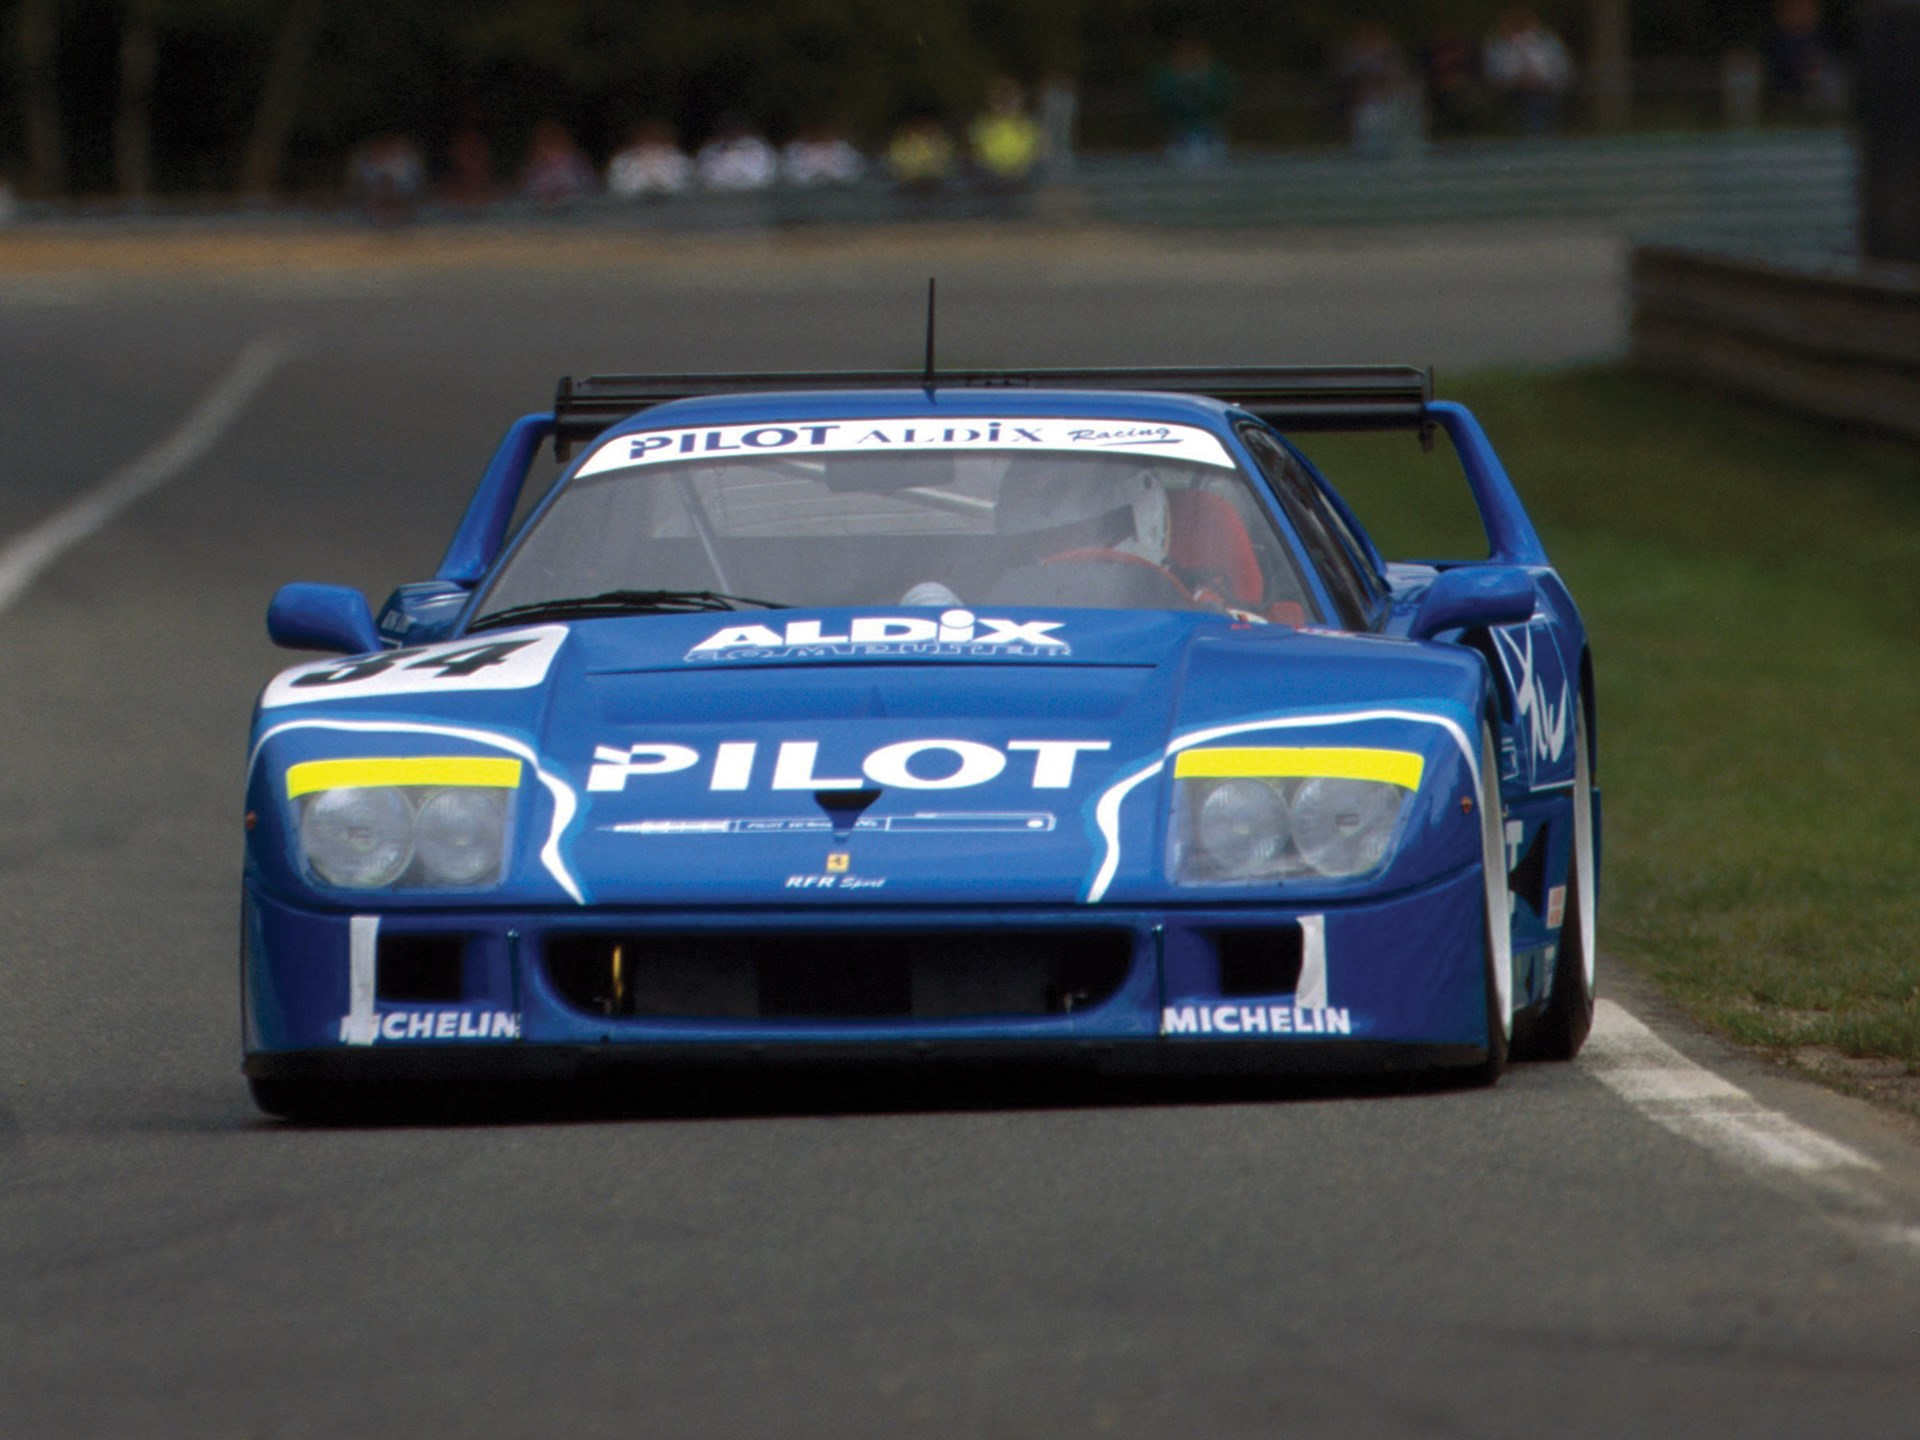 Chassis no. 74045 at pre-qualifying for the 24 Hours of Le Mans in April of 1995.